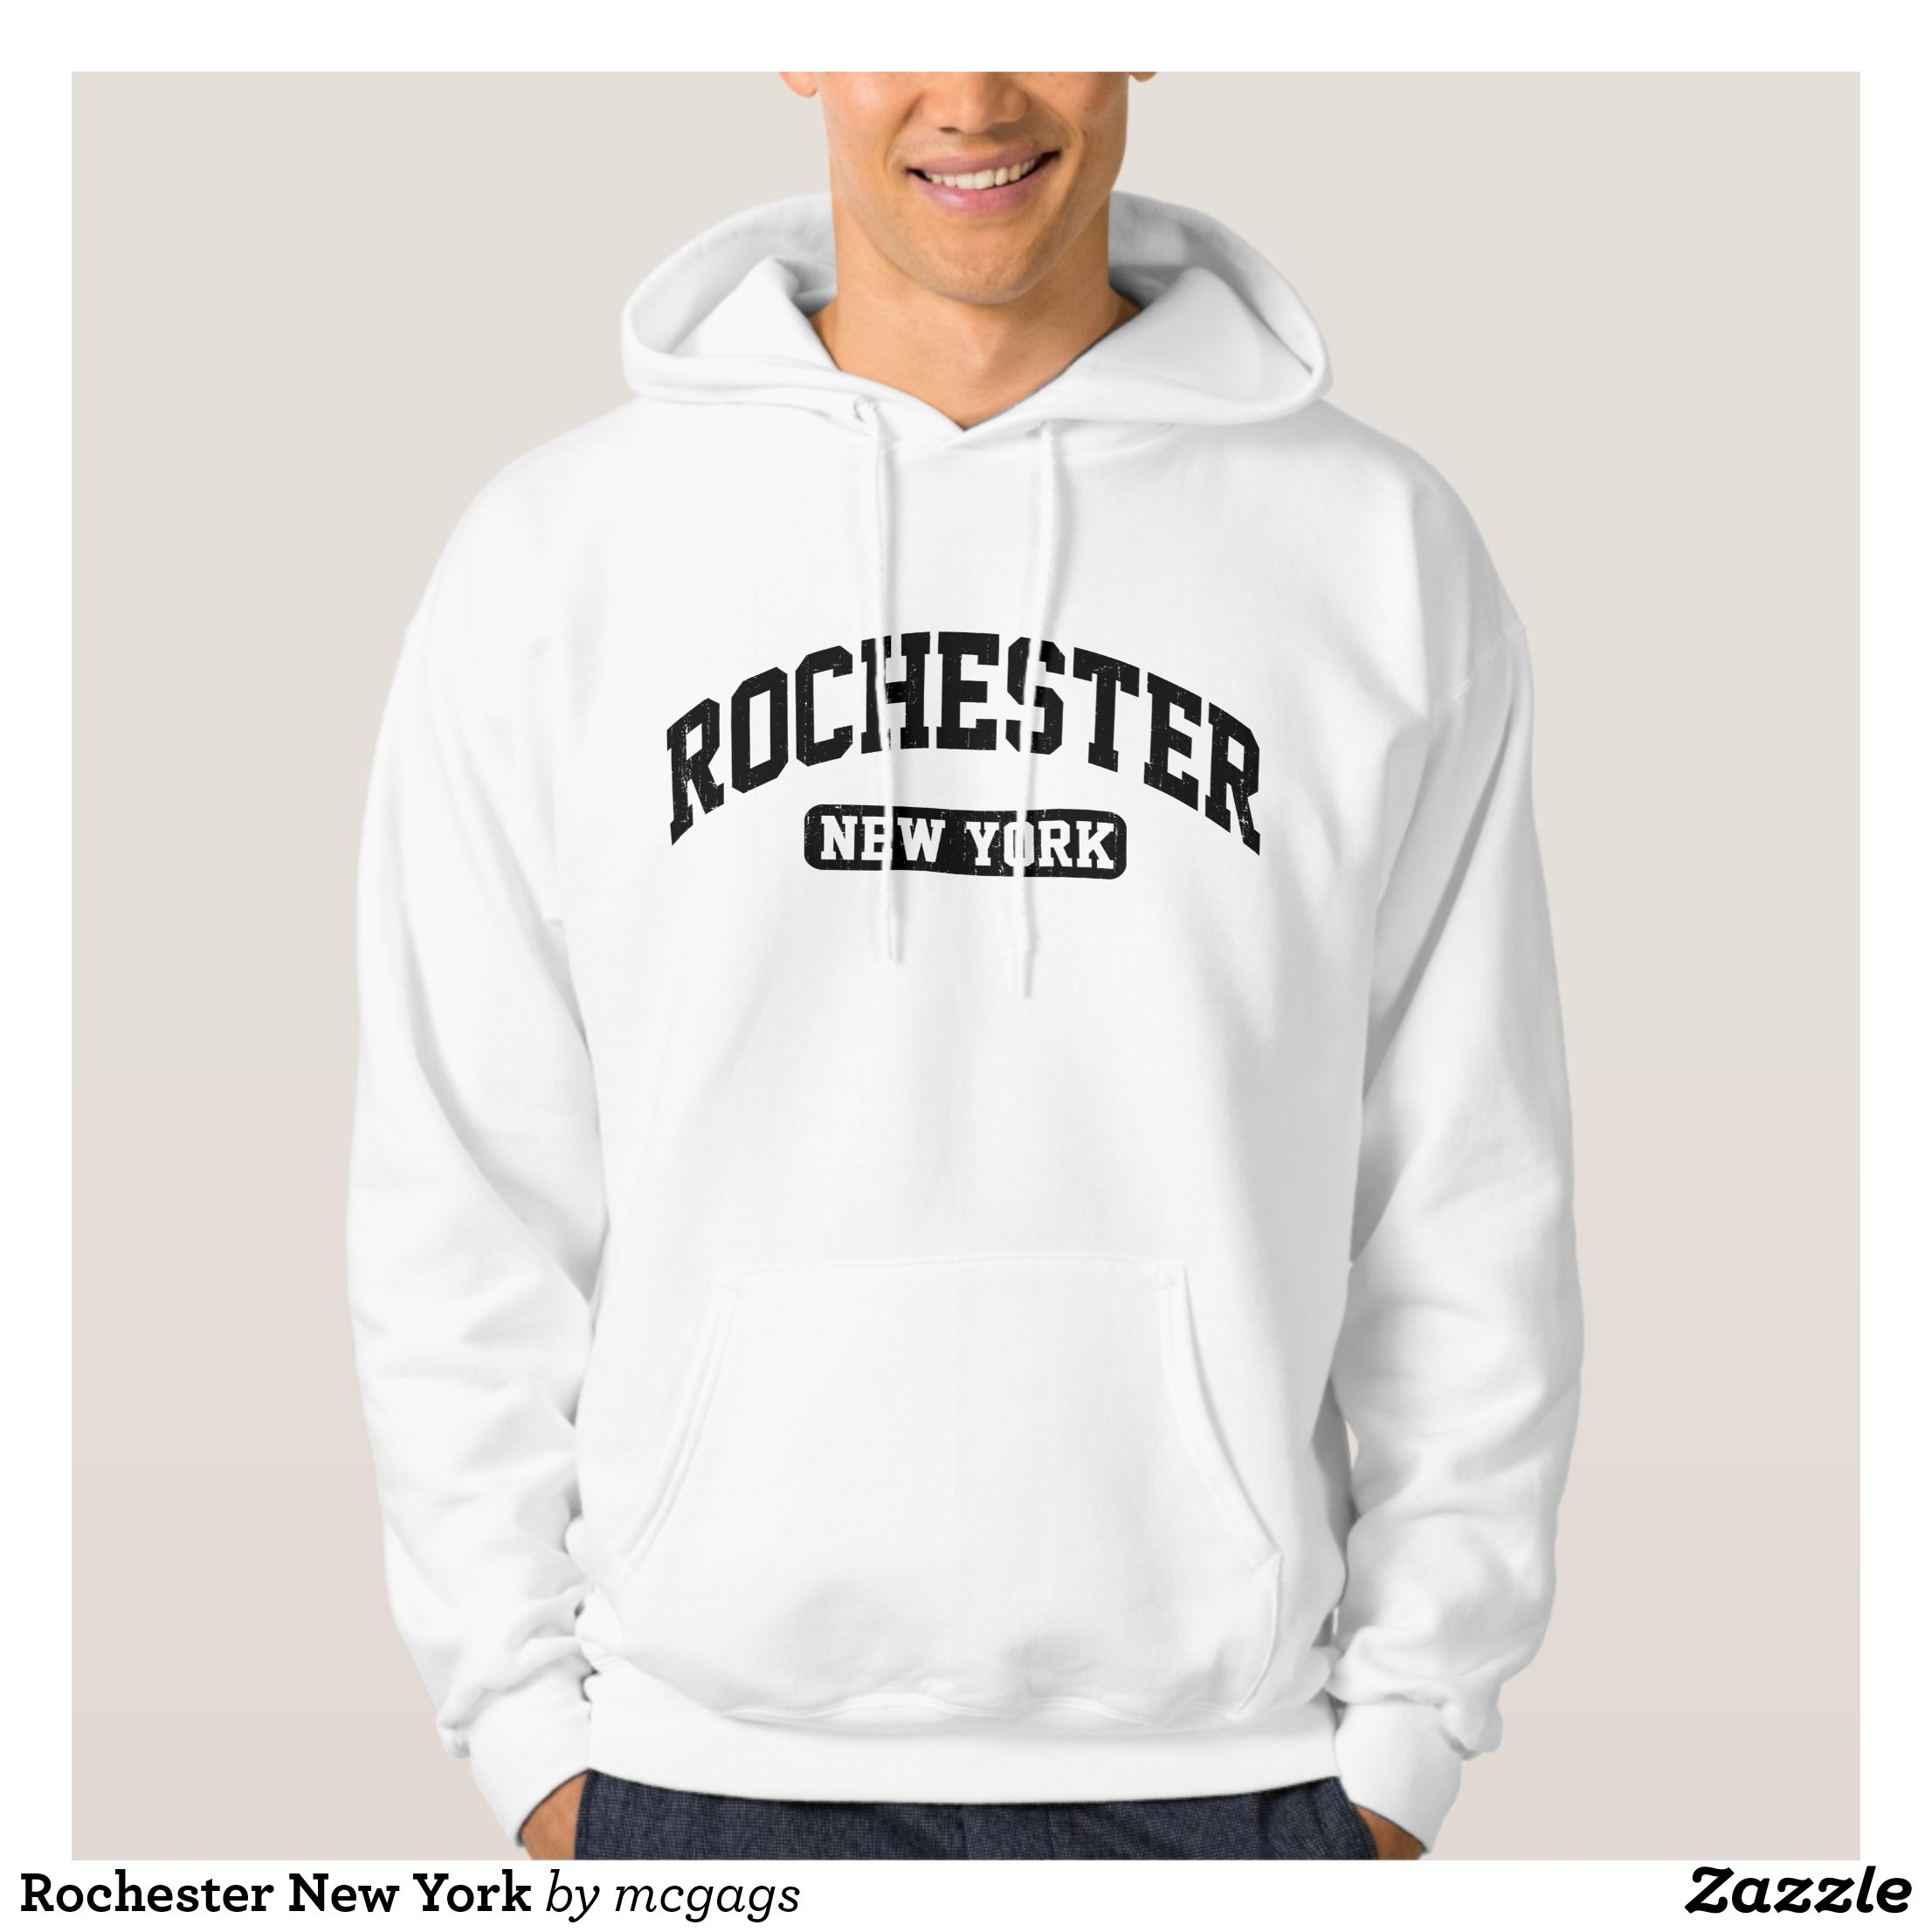 Rochester New York Hoodie - Stylish Comfortable And Warm Hooded Sweatshirts By Talented Fashion & Graphic Designers - #sweatshirts #hoodies #mensfashion #apparel #shopping #bargain #sale #outfit #stylish #cool #graphicdesign #trendy #fashion #design #fashiondesign #designer #fashiondesigner #style